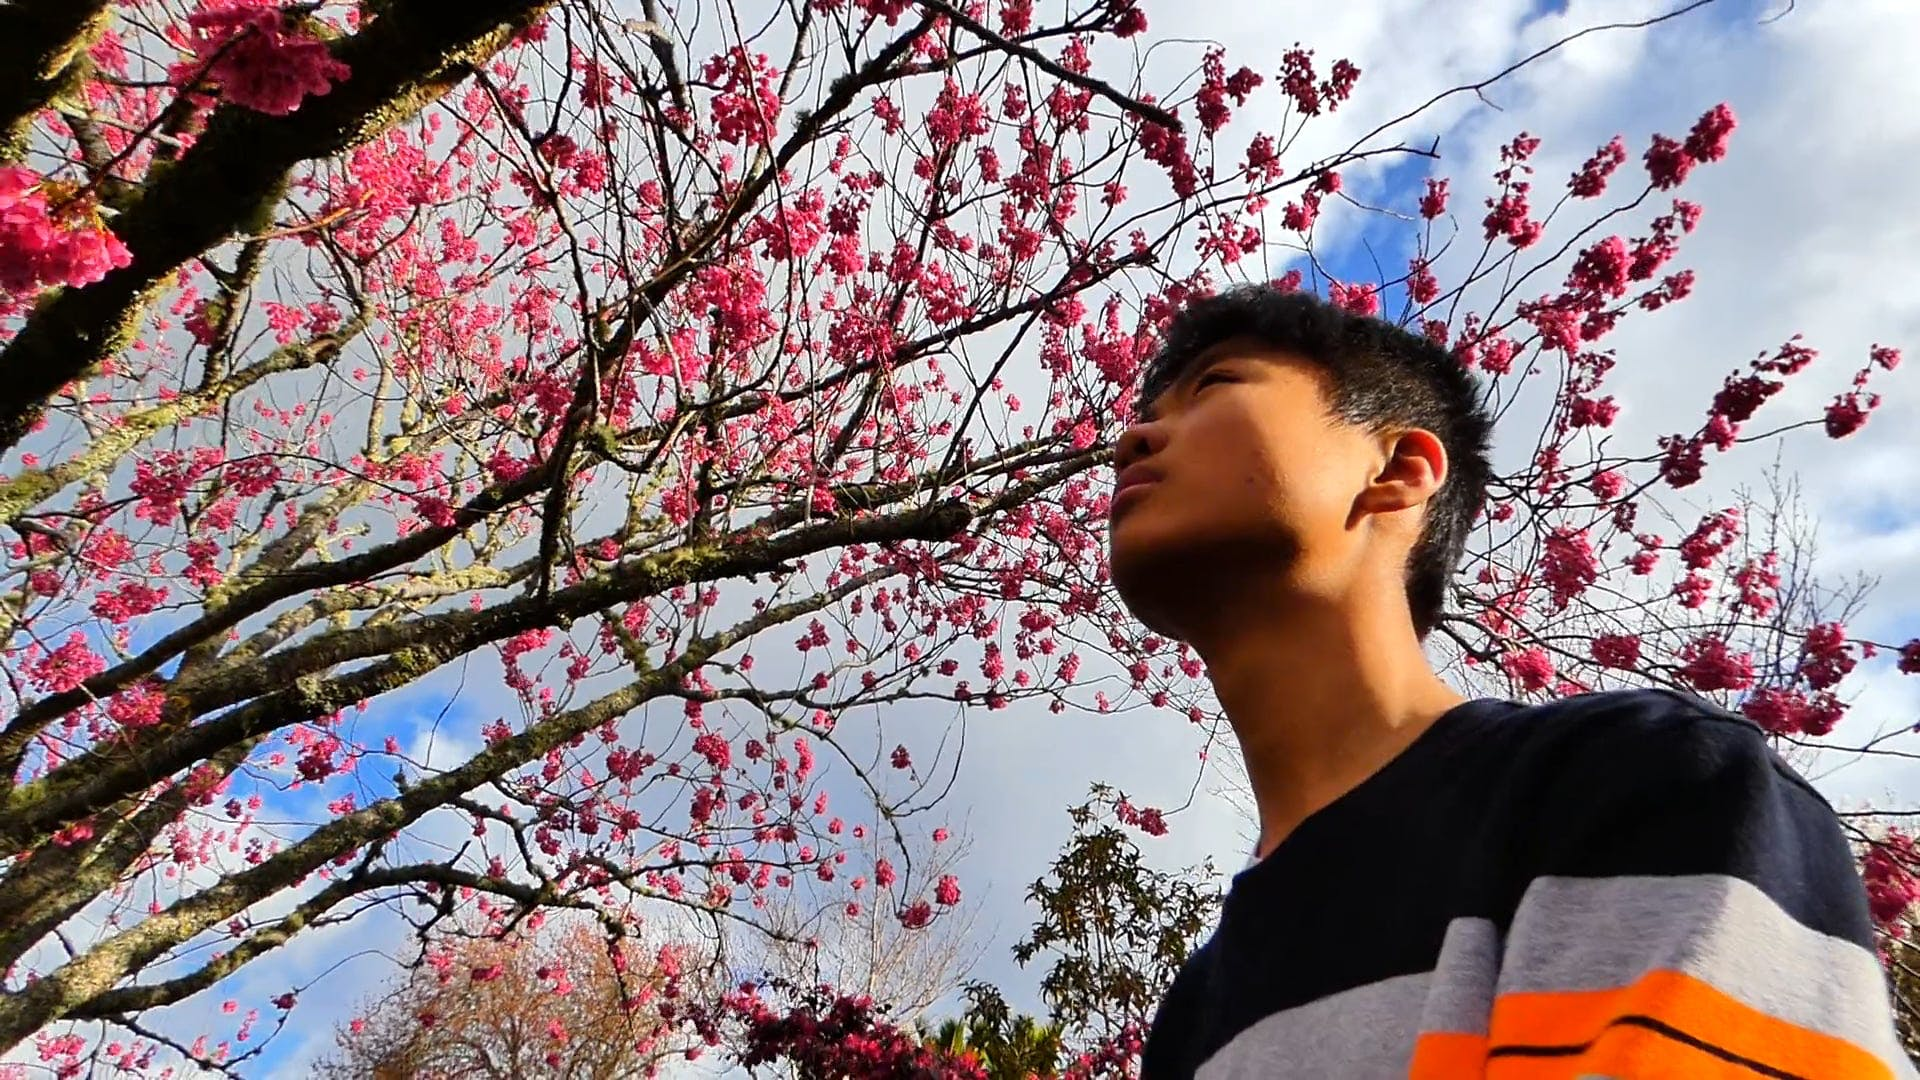 Man Looking Up At A Cherry Blossom Tree